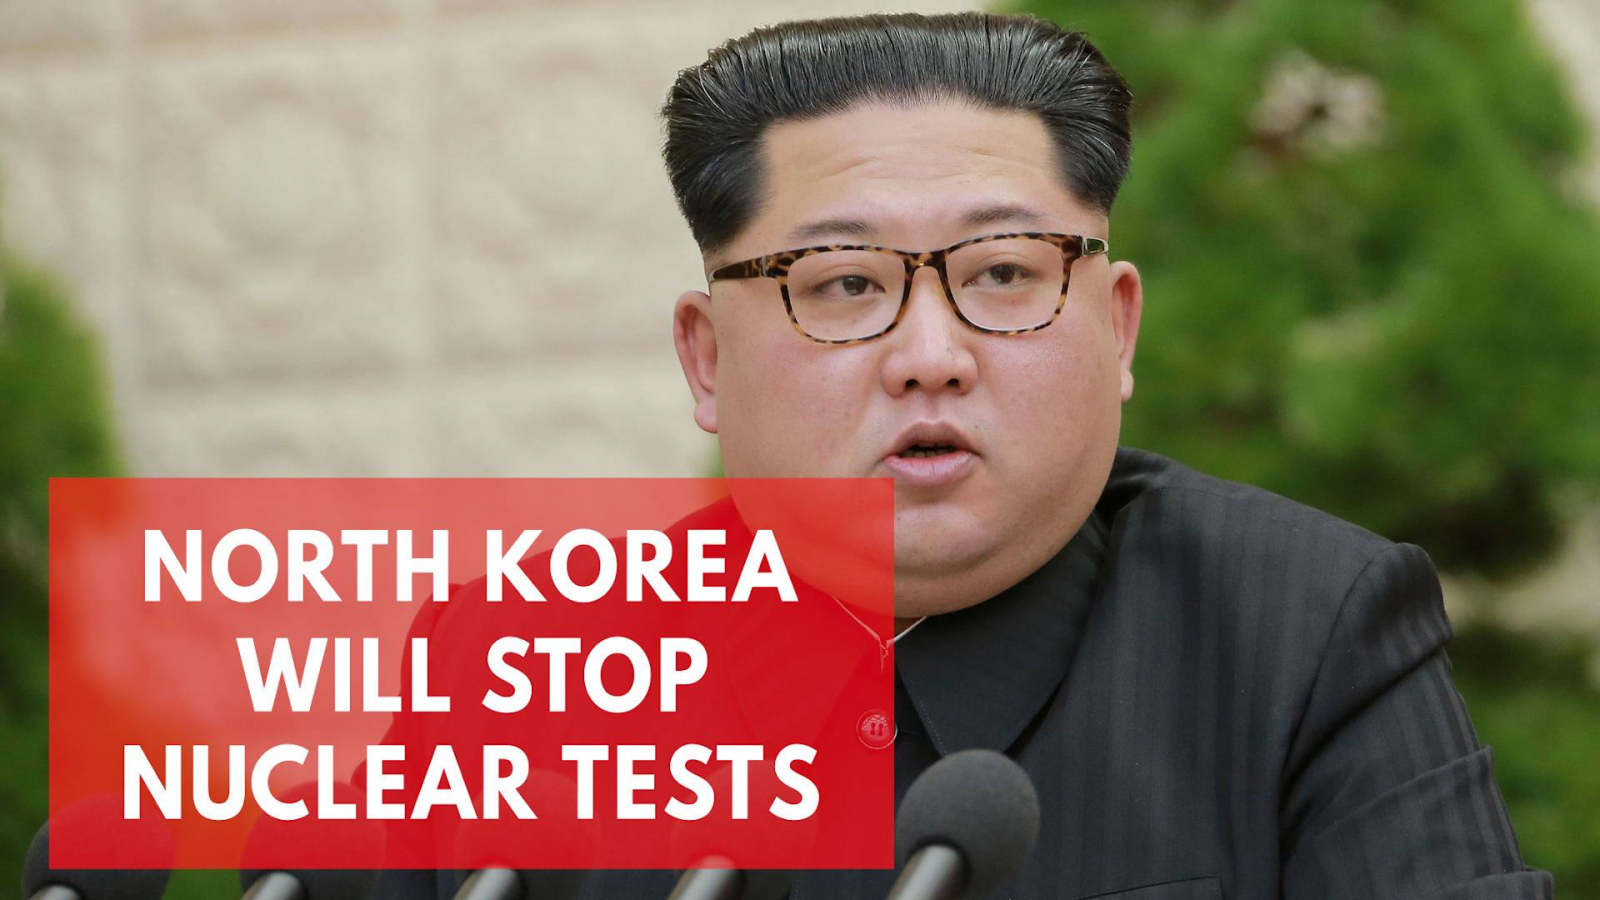 north-korea-says-will-stop-nuclear-tests